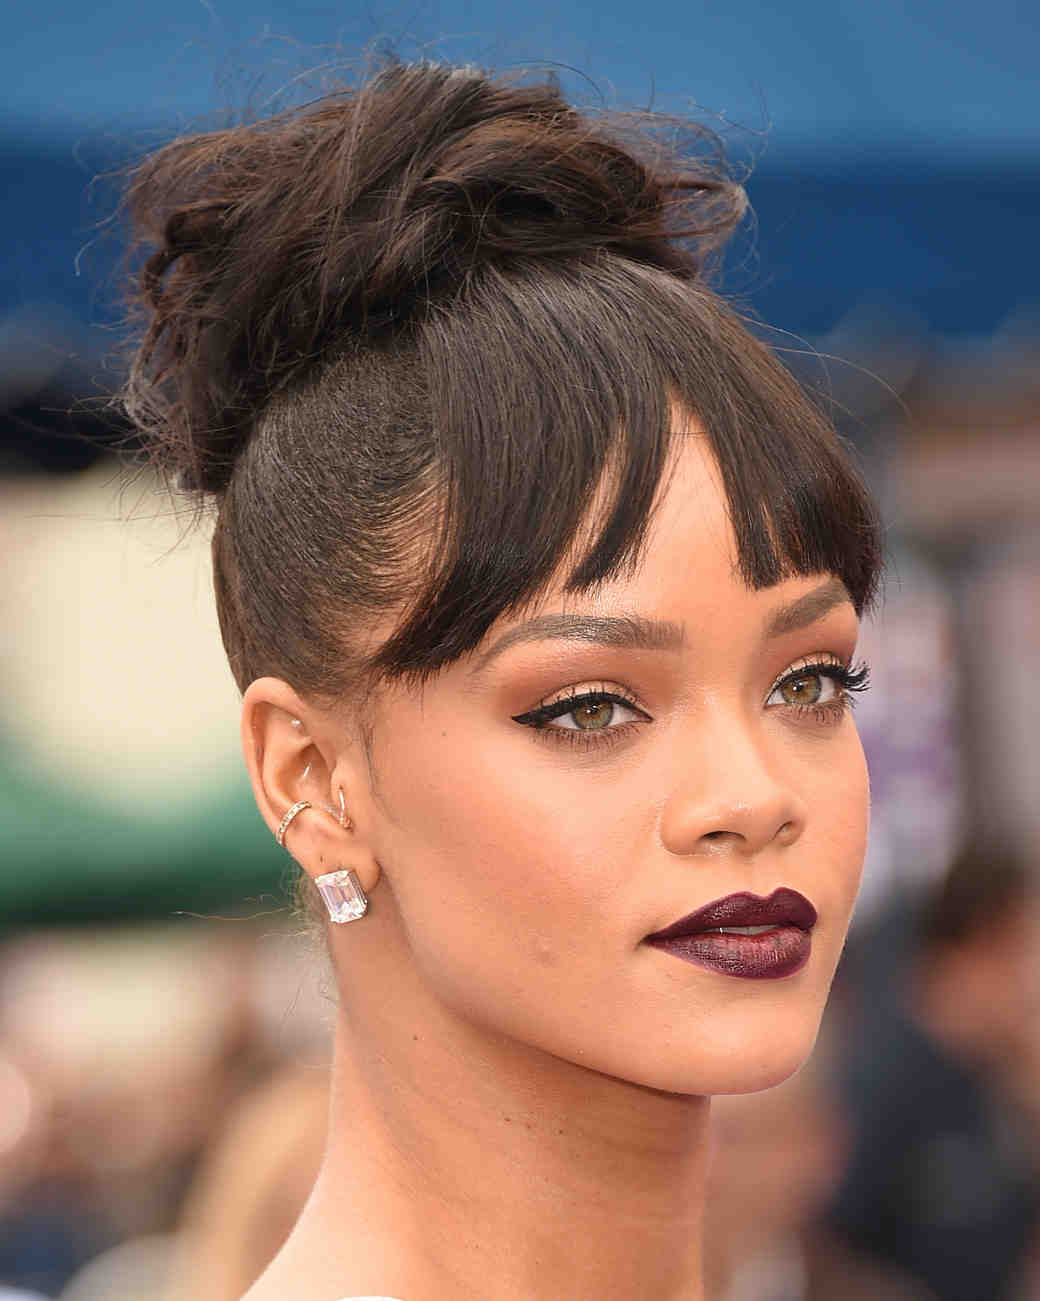 30 Celebrity Makeup Looks To Steal For Your Wedding